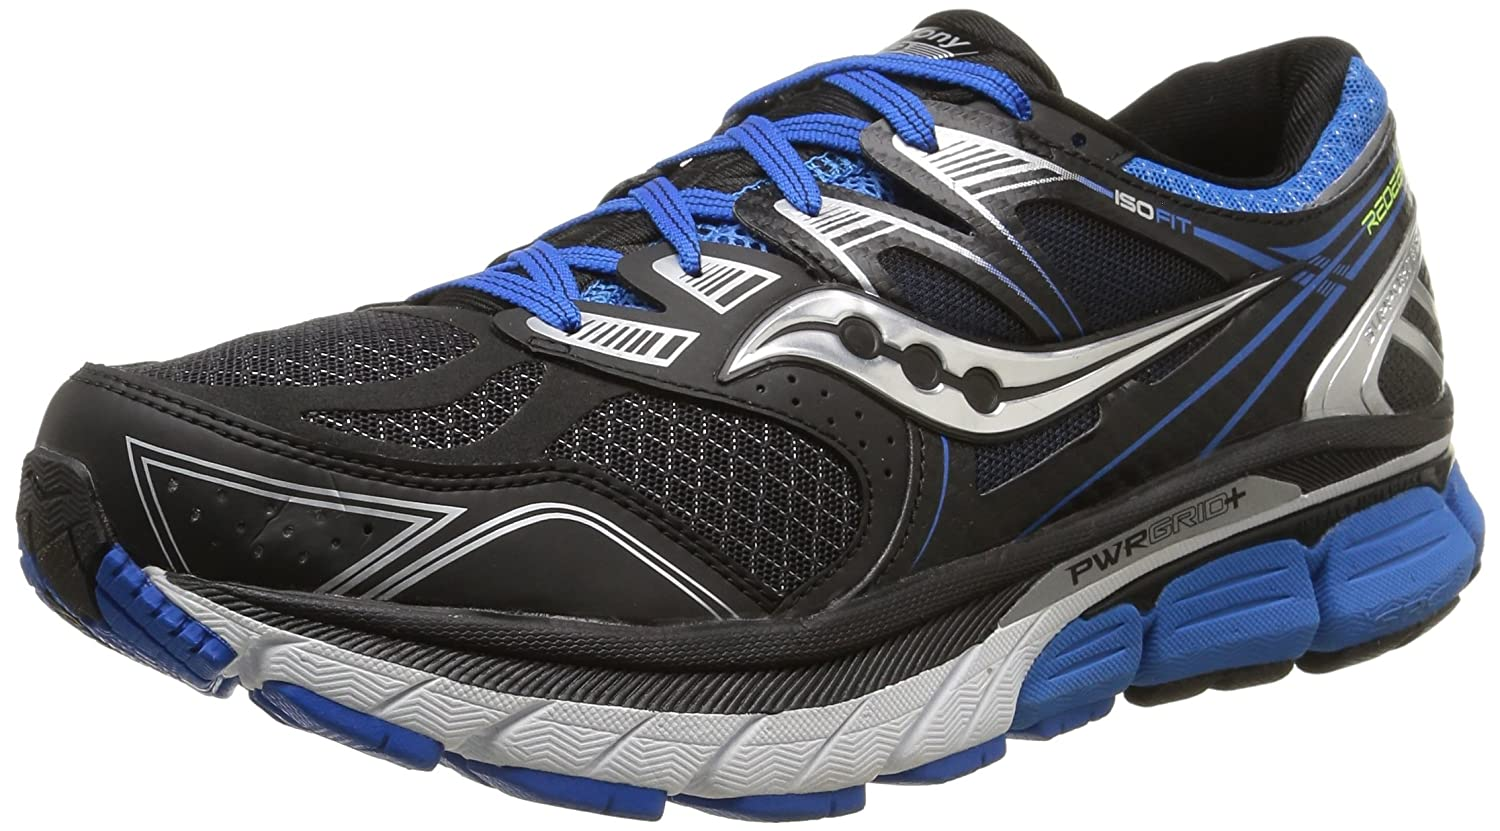 Saucony Men's Redeemer ISO Road Running Shoe B015EN7NNE 10 4E US|Black/Blue